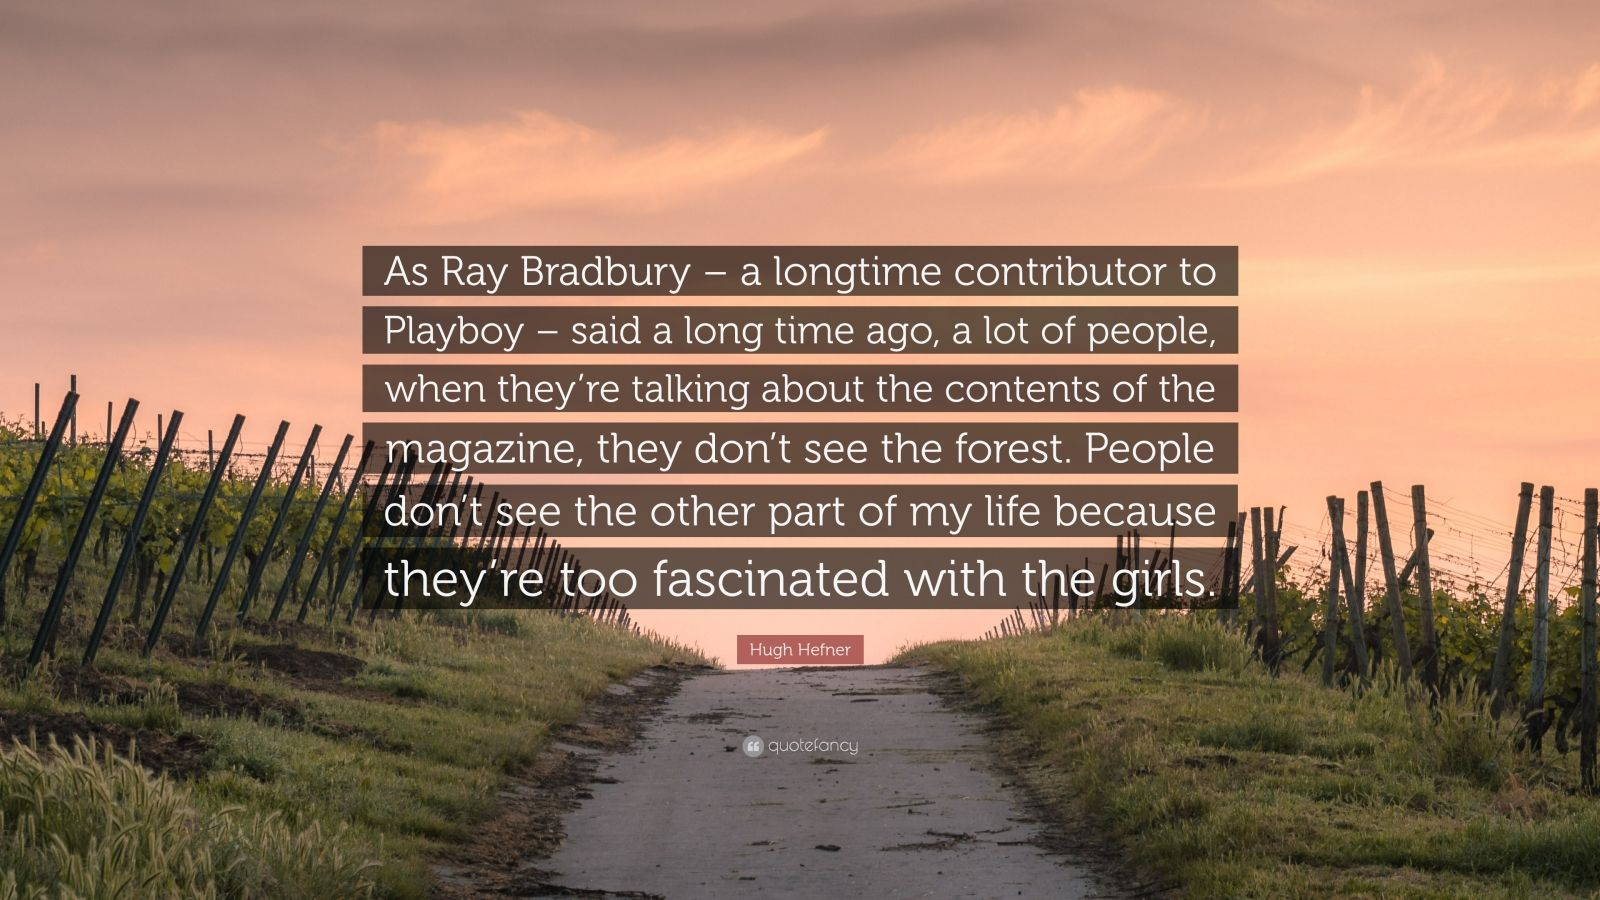 "Hugh Hefner Quote: ""As Ray Bradbury – a longtime contributor to Playboy – said a long time ago, a lot of people, when they're talking about the contents of the magazine, they don't see the forest. People don't see the other part of my life because they're too fascinated with the girls."""